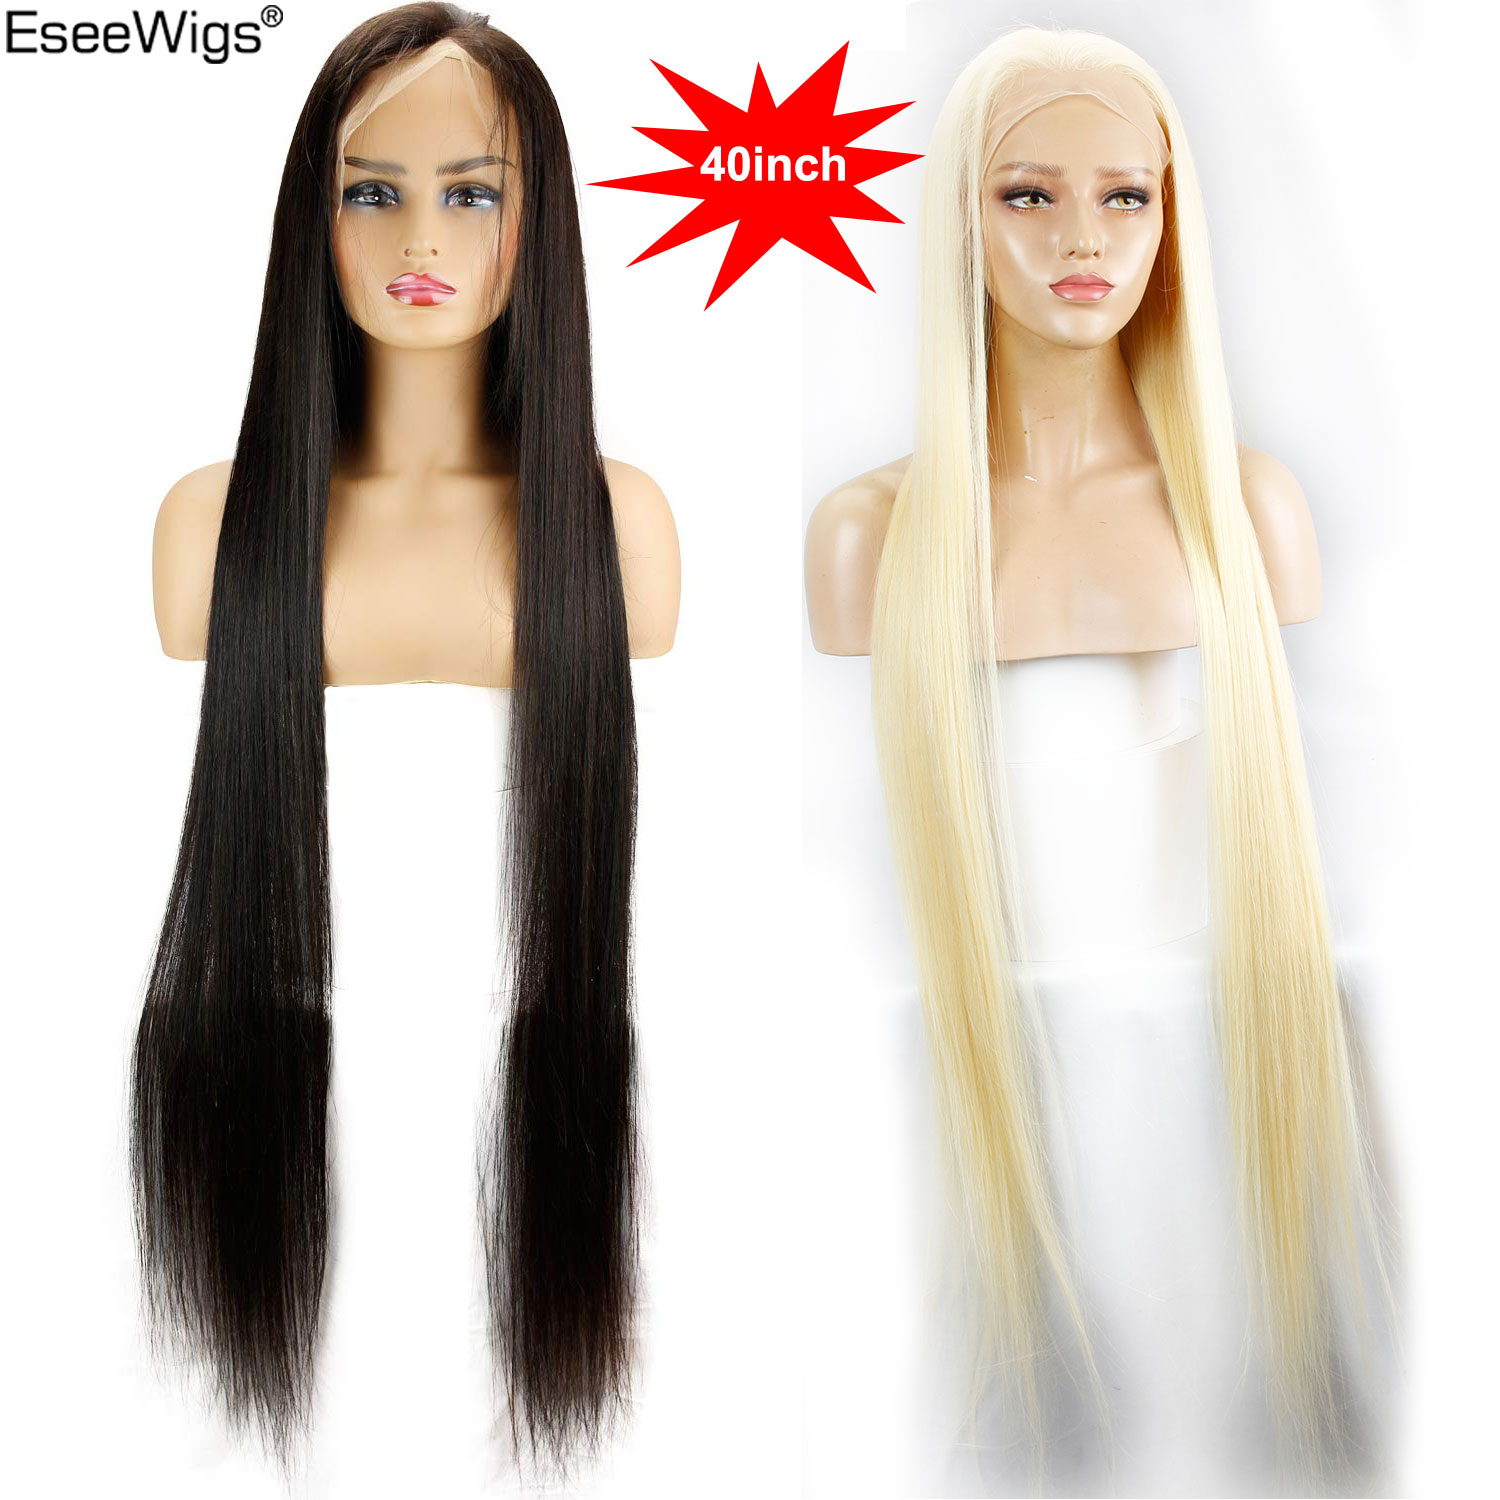 Eseewigs 28 <font><b>30</b></font> <font><b>32</b></font> 34 <font><b>36</b></font> 38 <font><b>40</b></font> 42 inch Long Brazilian Virgin Human Hair Full Lace Wigs Silk Straight 613 Color for Women 150% image